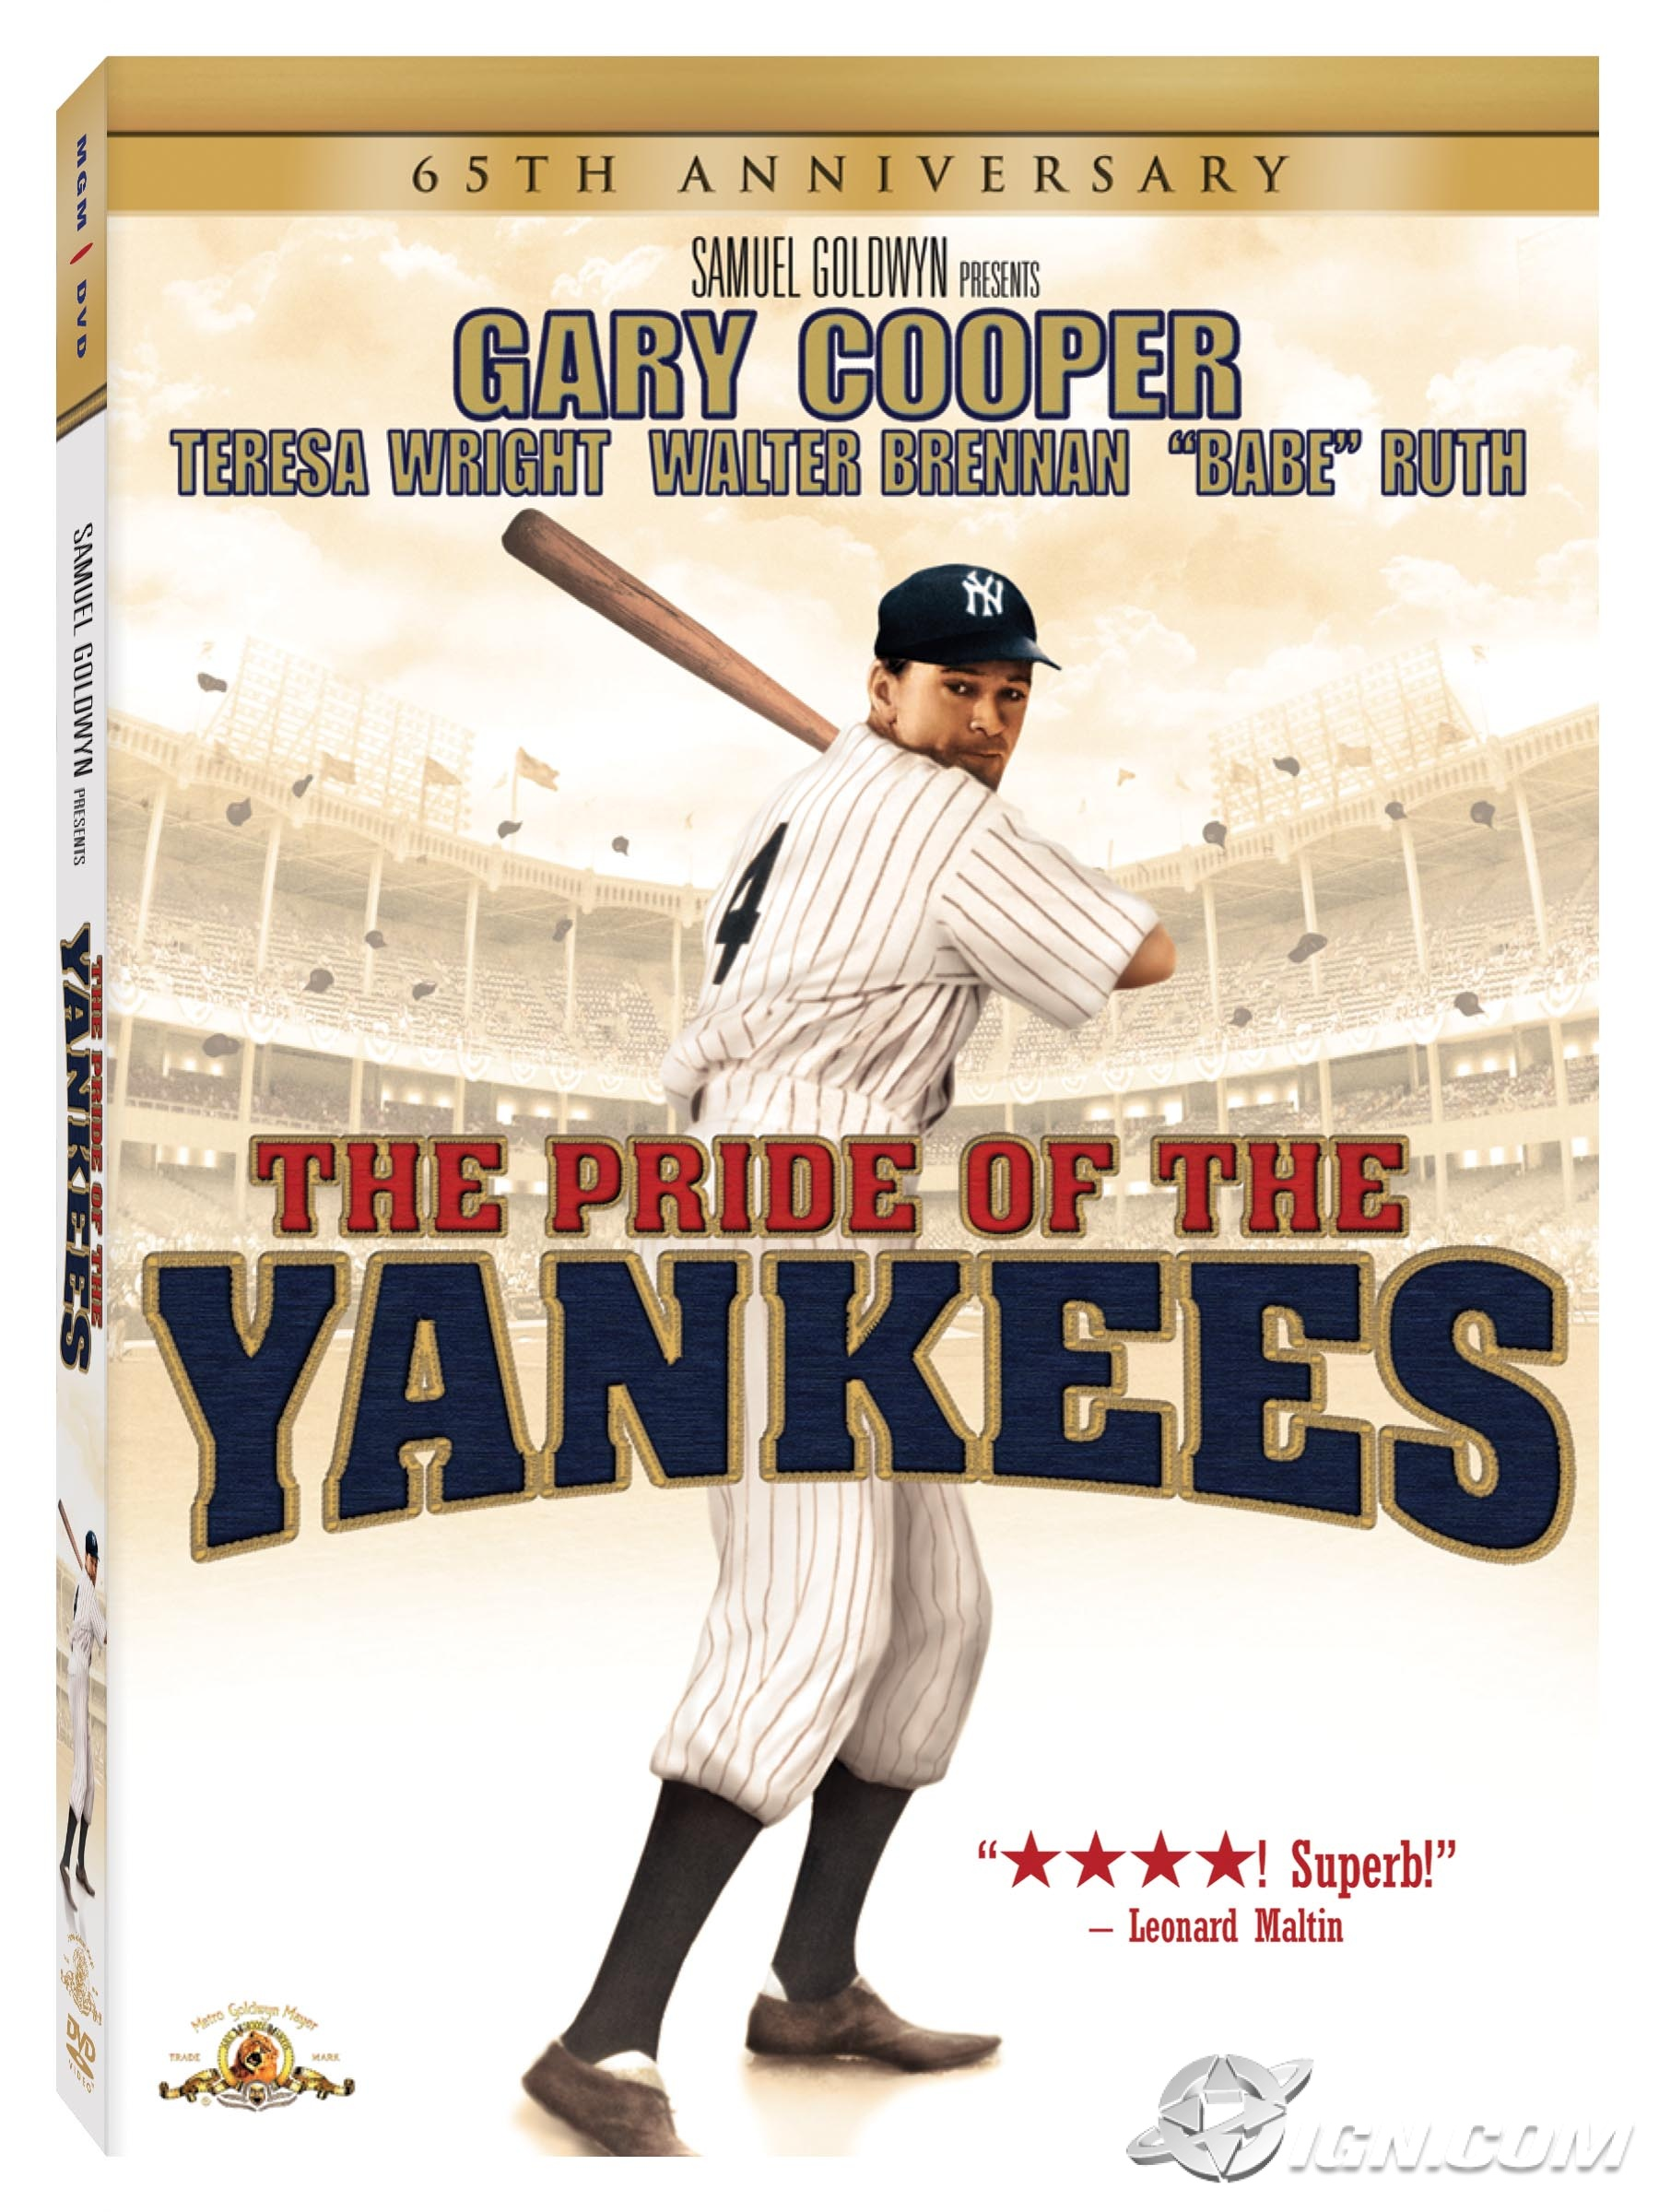 the-pride-of-the-yankees-65th-anniversary-edition-20080122081715758-2260050